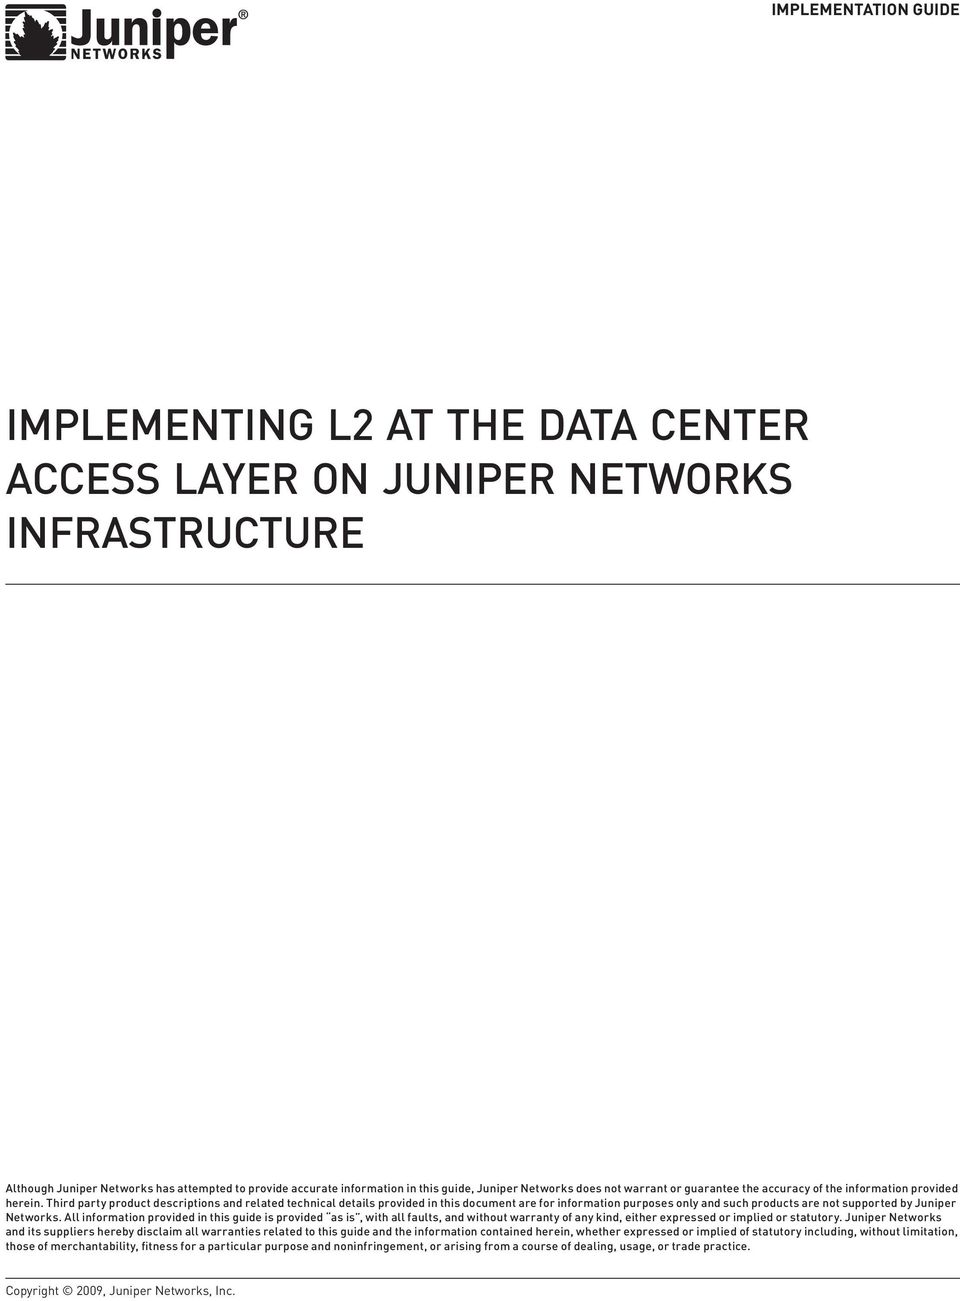 Implementing L2 at the Data Center Access Layer on Juniper